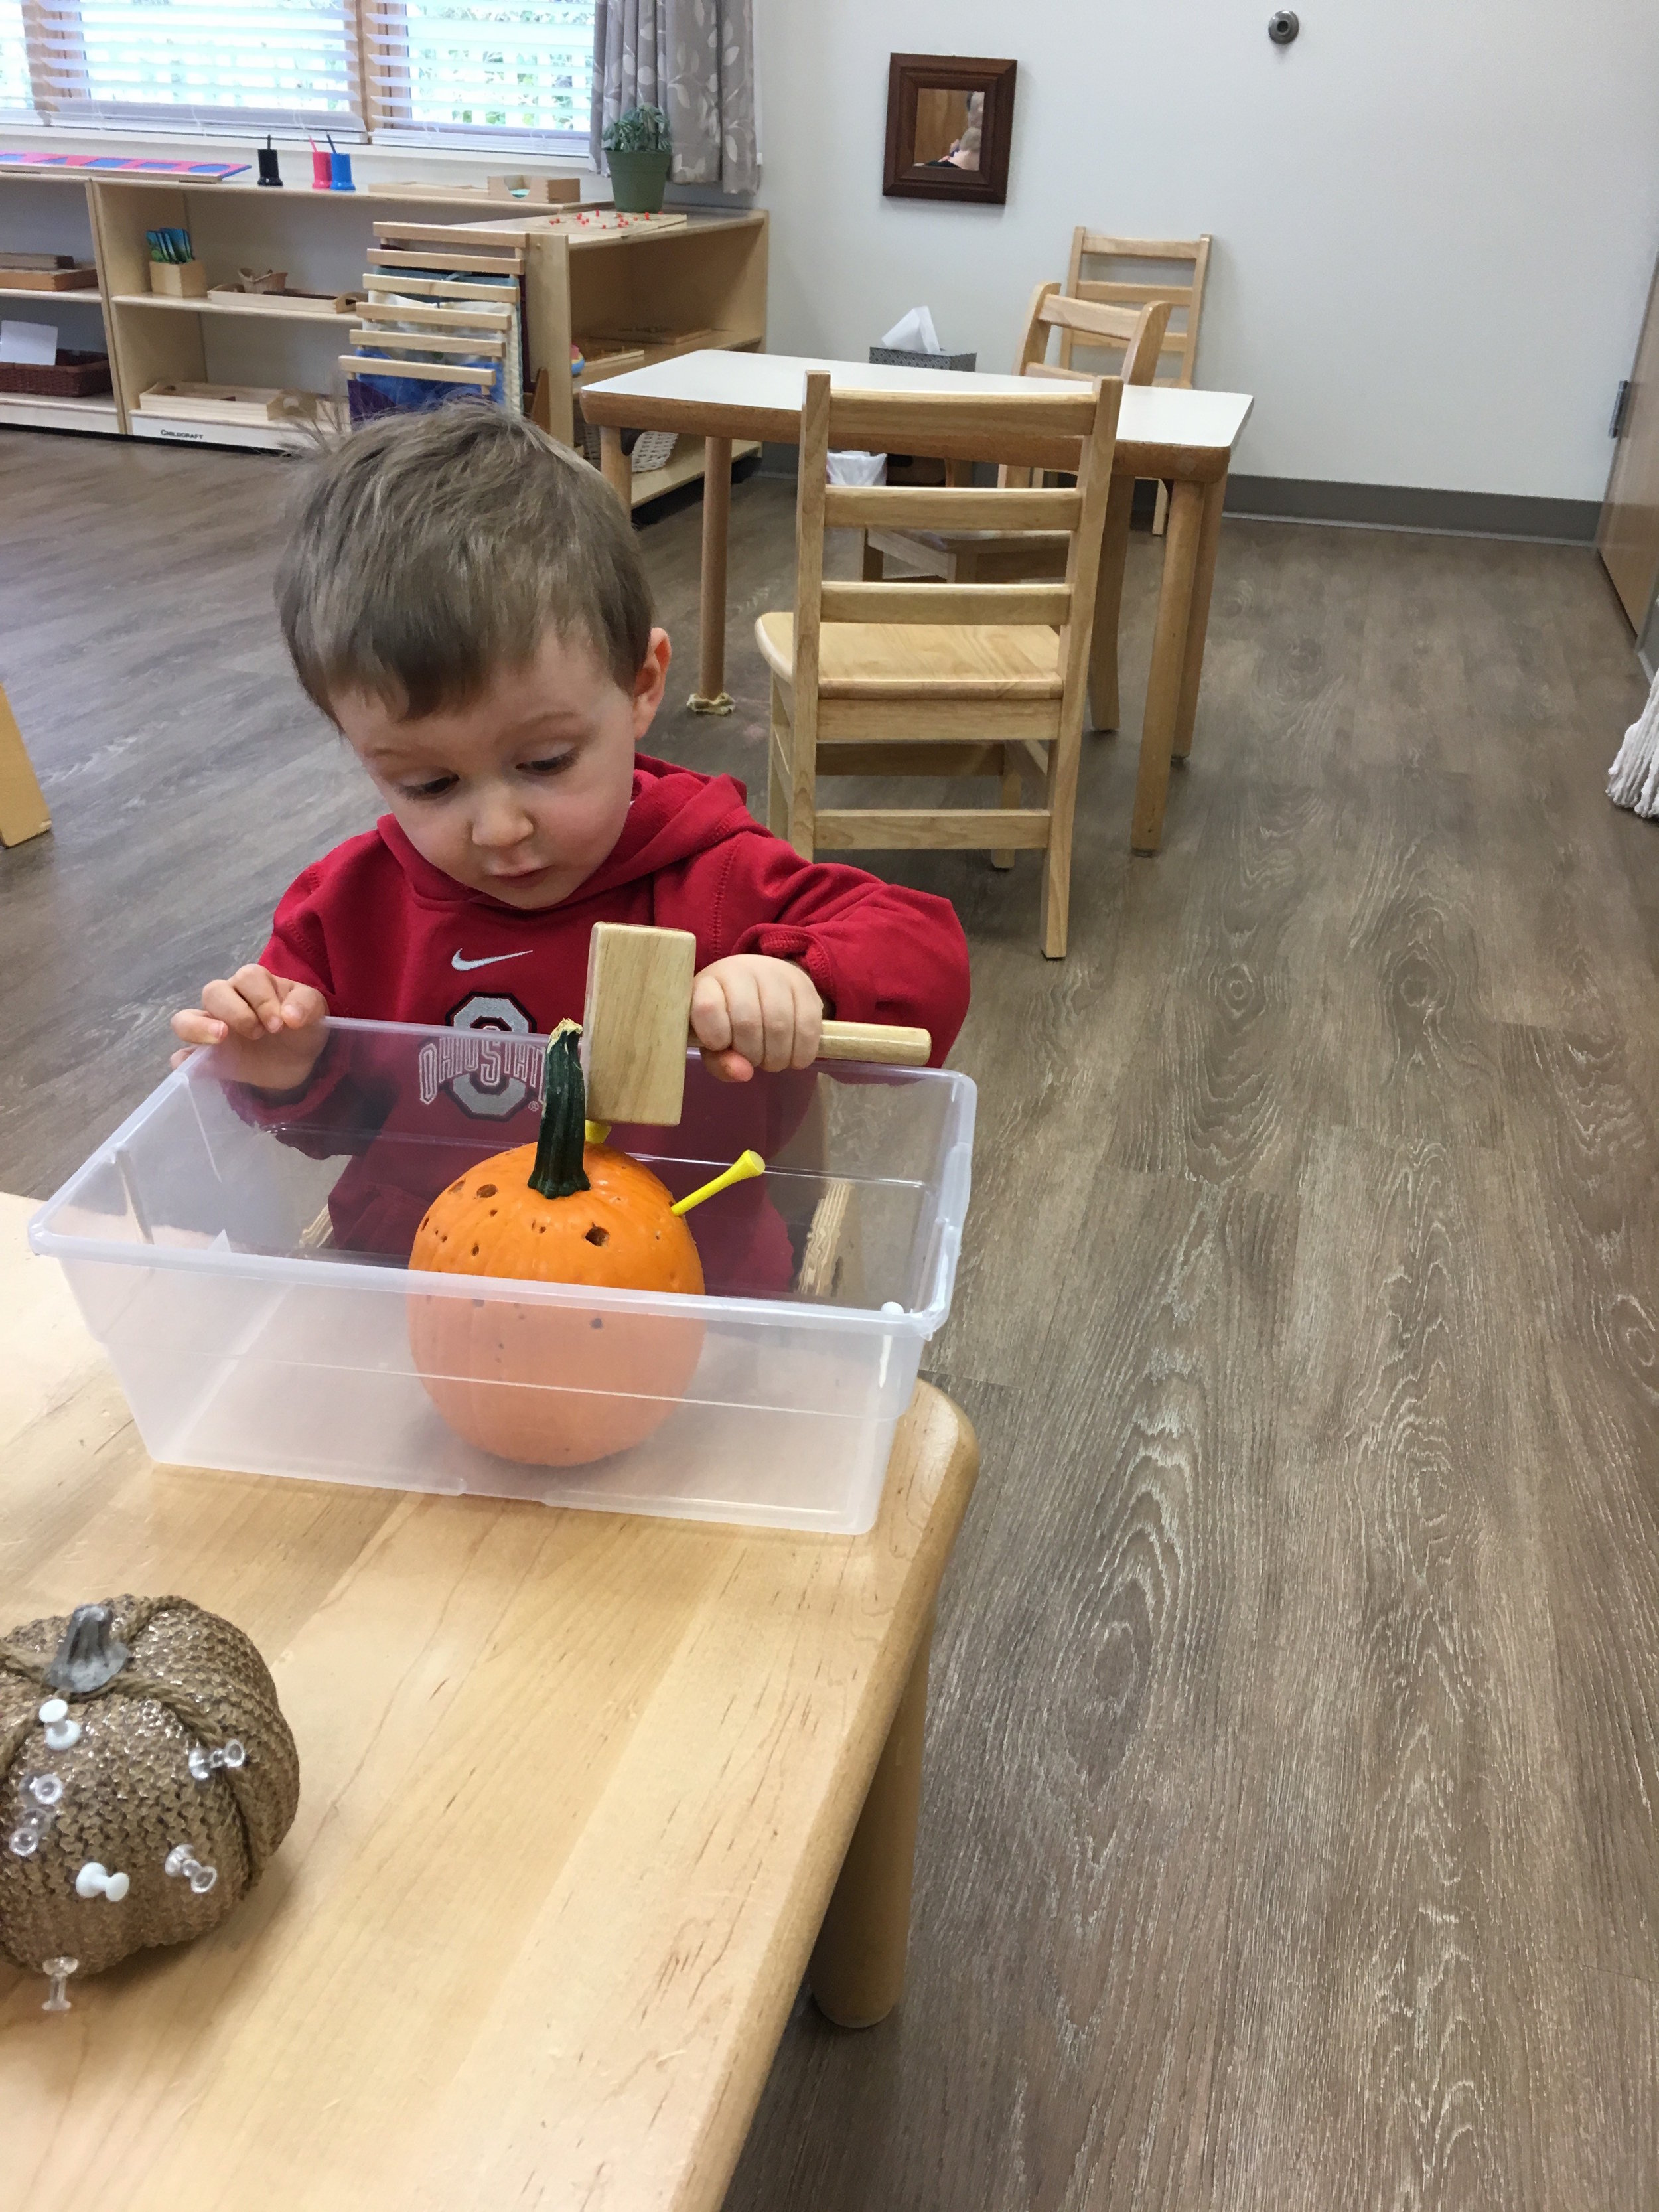 Children in the classroom are encouraged to observe their classmates working. Our multi-aged classrooms allow children to learn from those who are older.